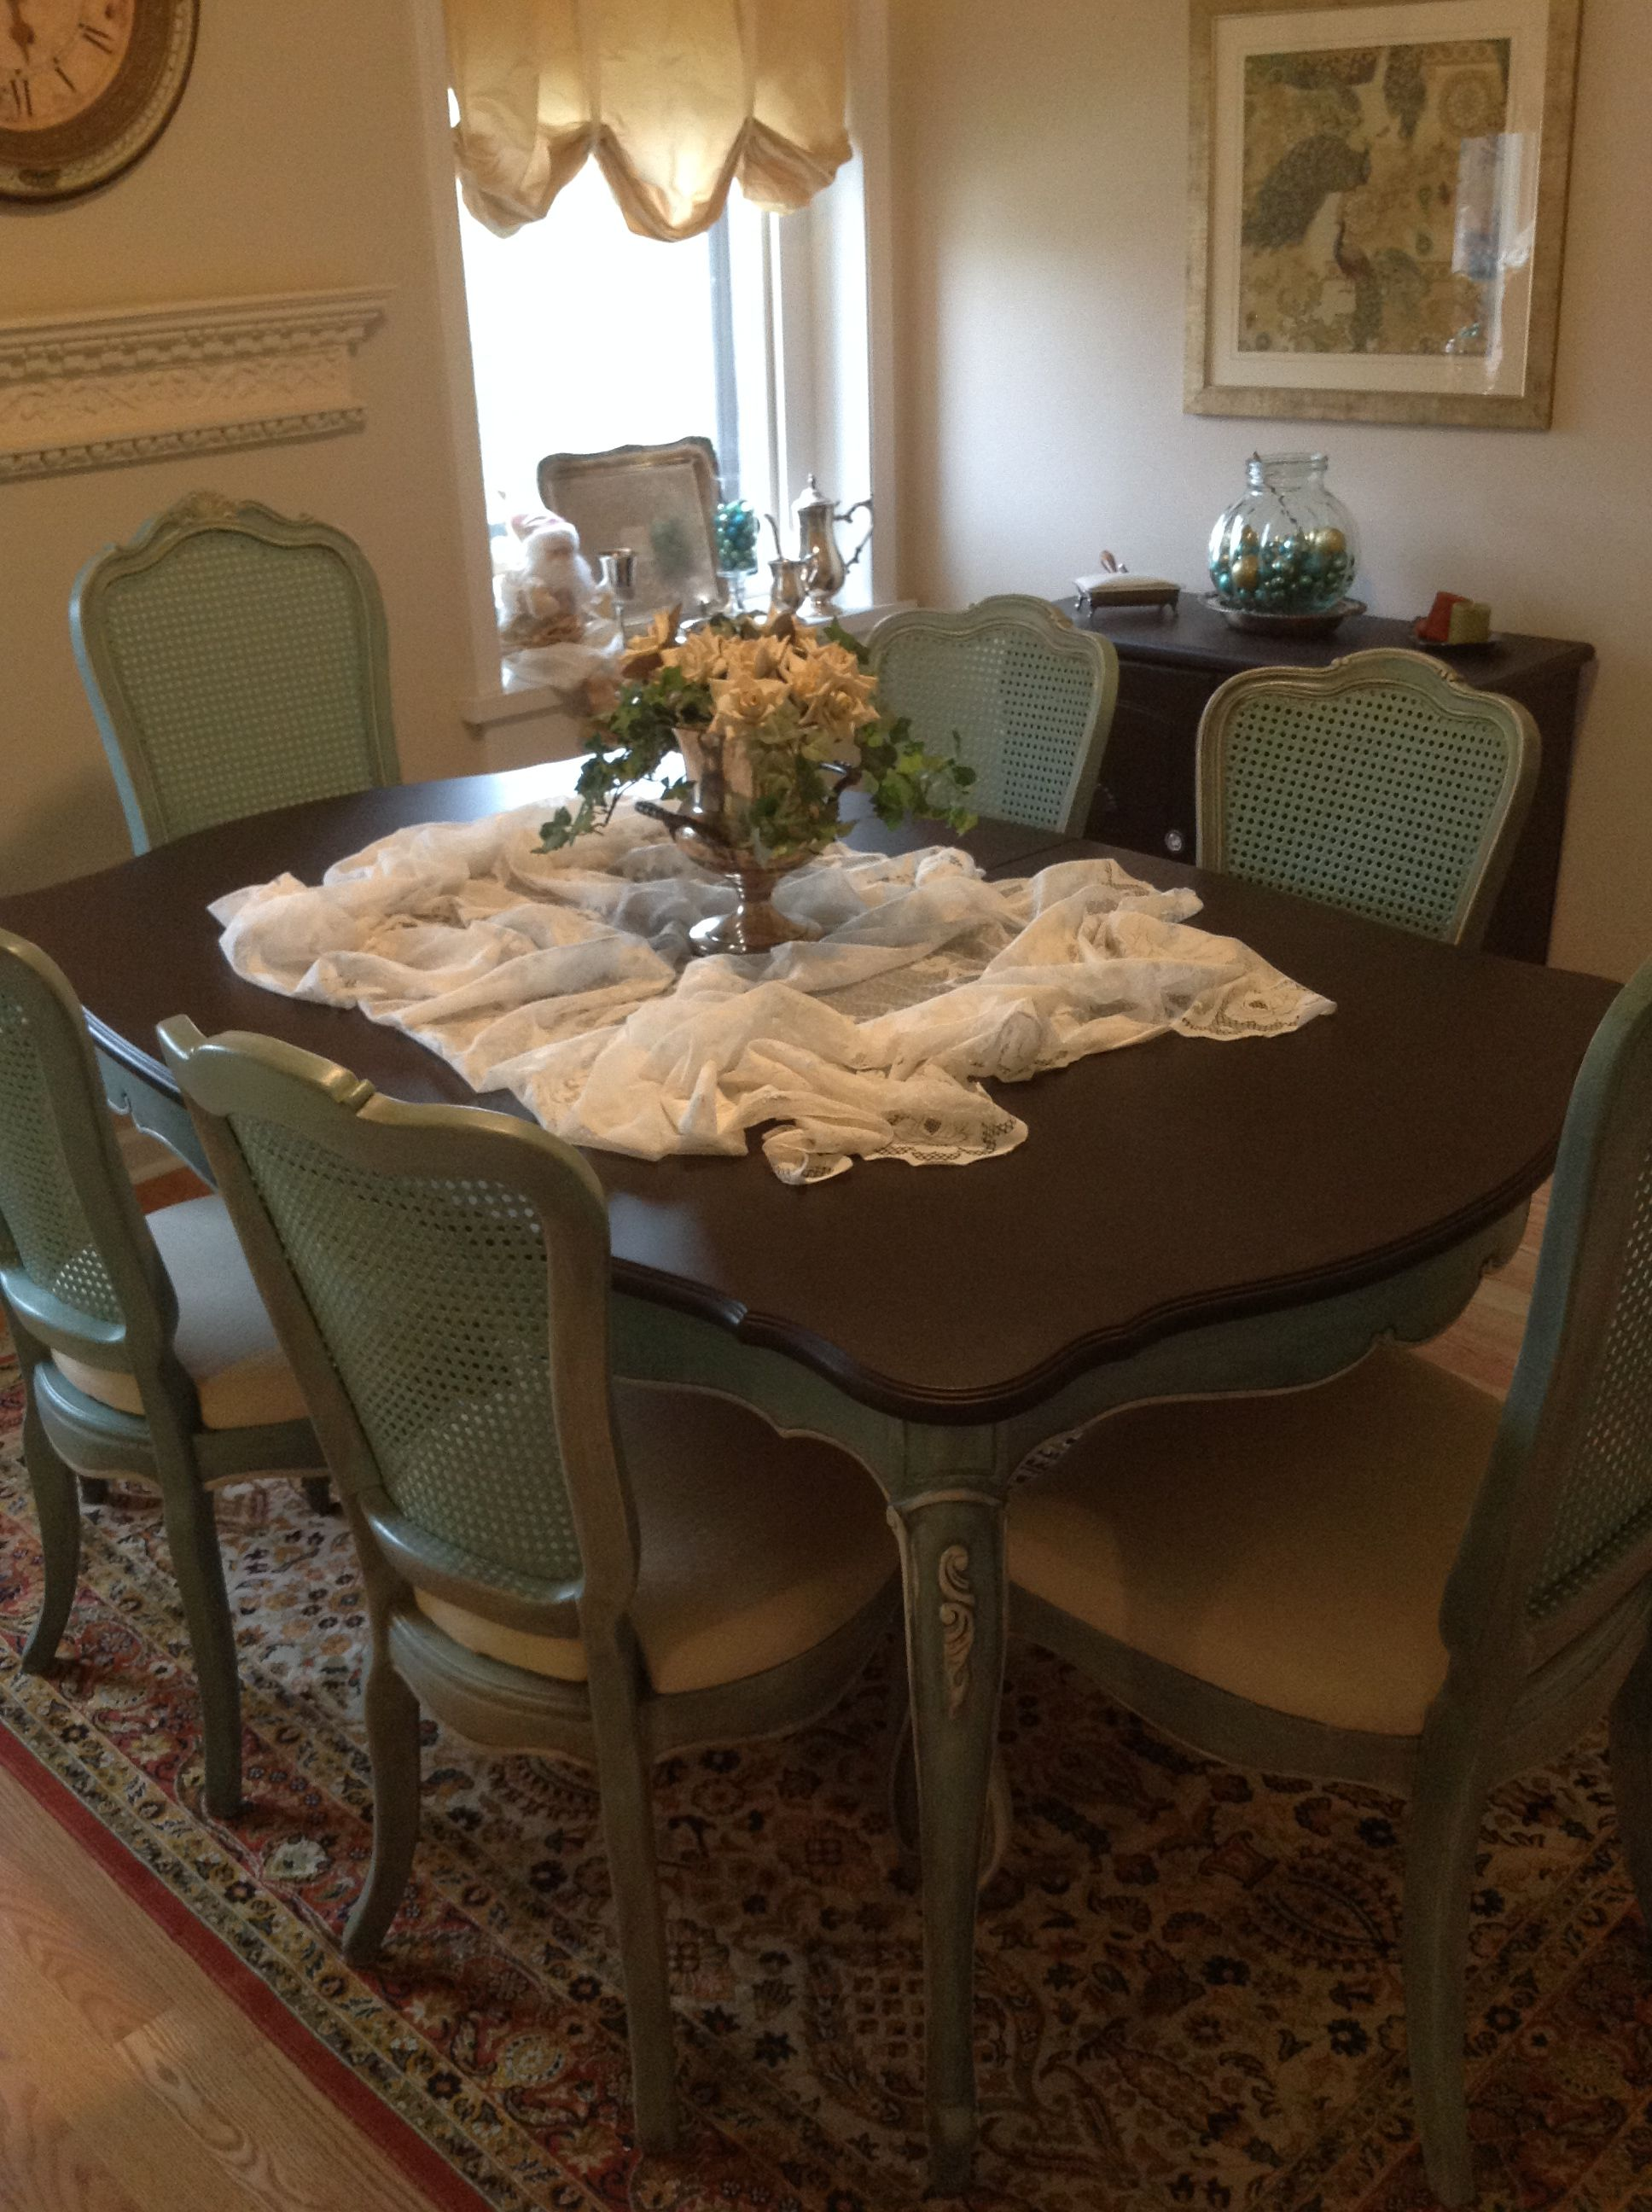 French Provincial Or French Country Thomasville Dining Room Table And Cane French Country Dining Room French Country Dining French Country Dining Room Chairs